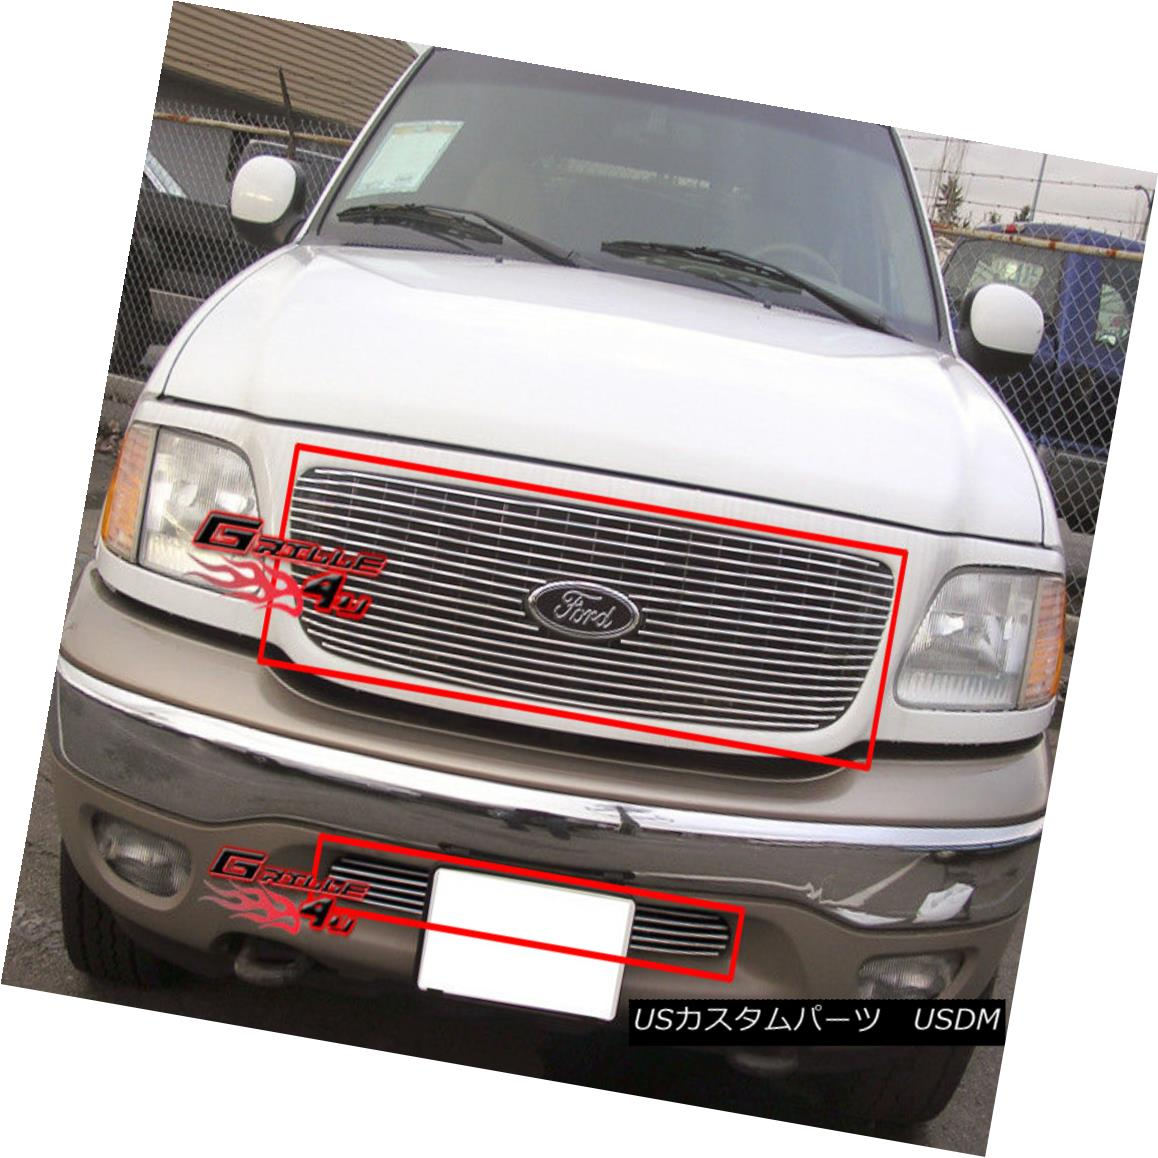 グリル For 99-02 Ford Expedition 4WD Billet Grille Combo Insert 99-02 Ford Expedition 4WDビレットグリルコンボインサート